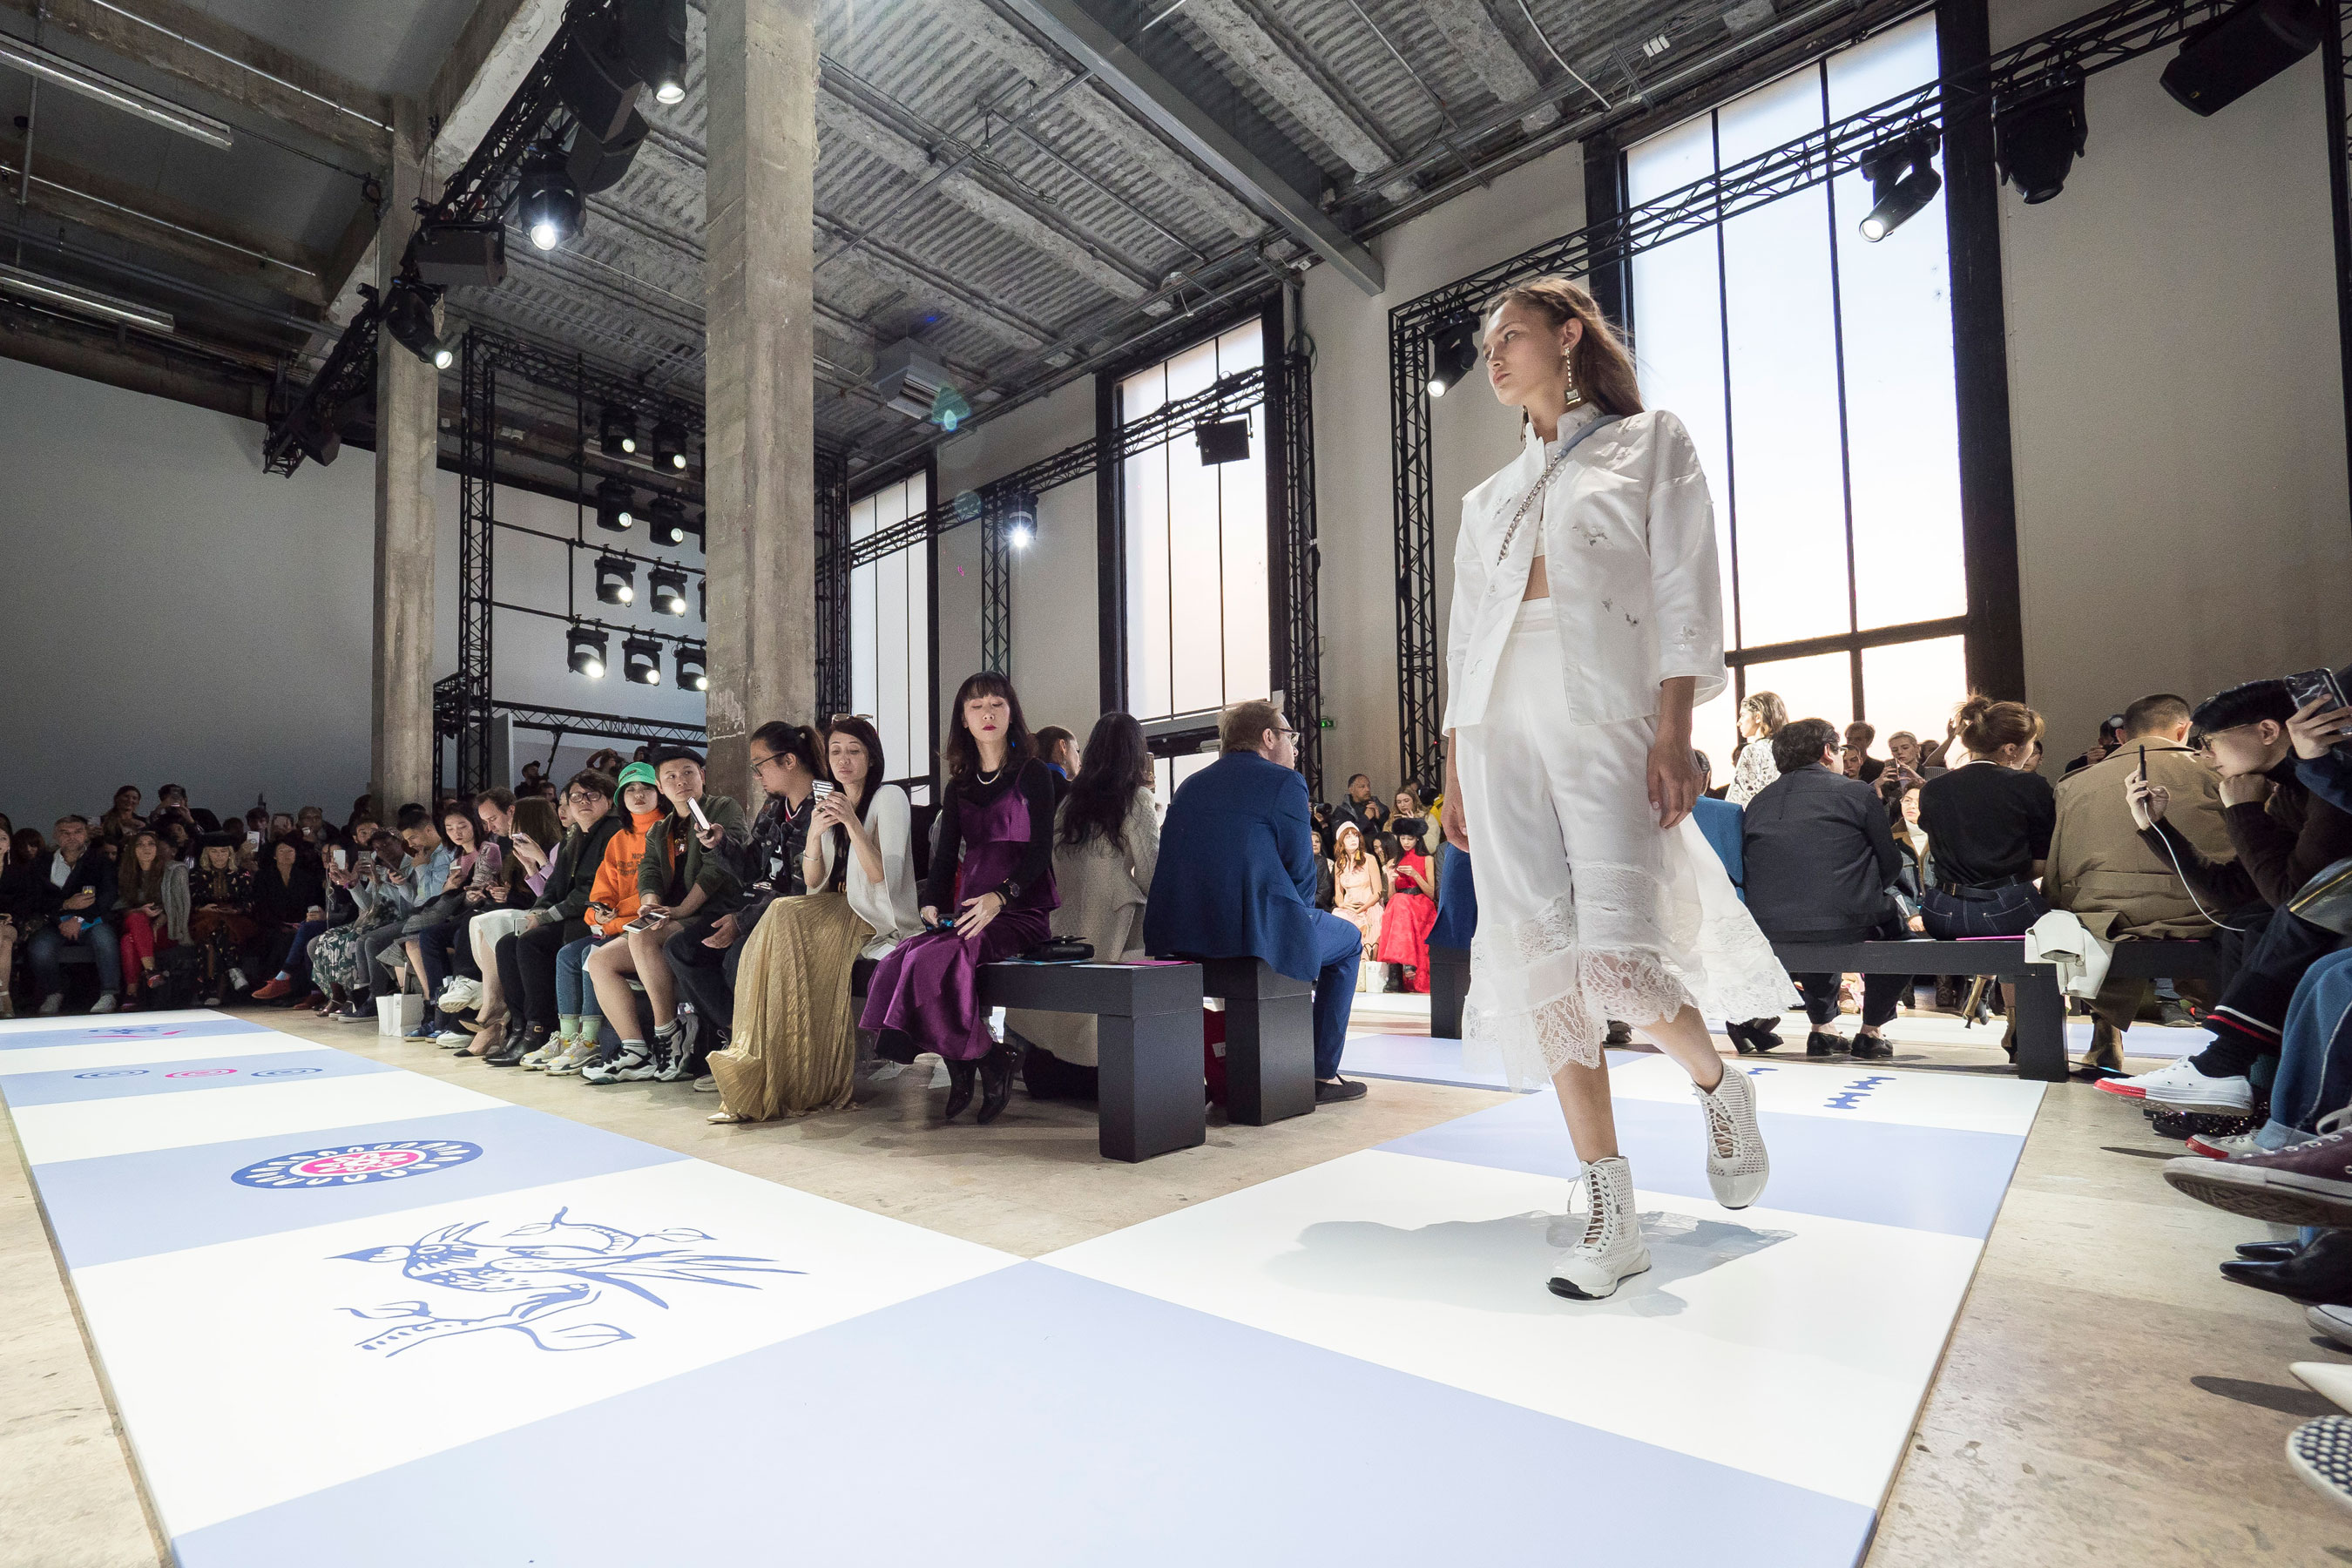 Shiatzy Chen Spring 2019  Fashion Show Atmosphere